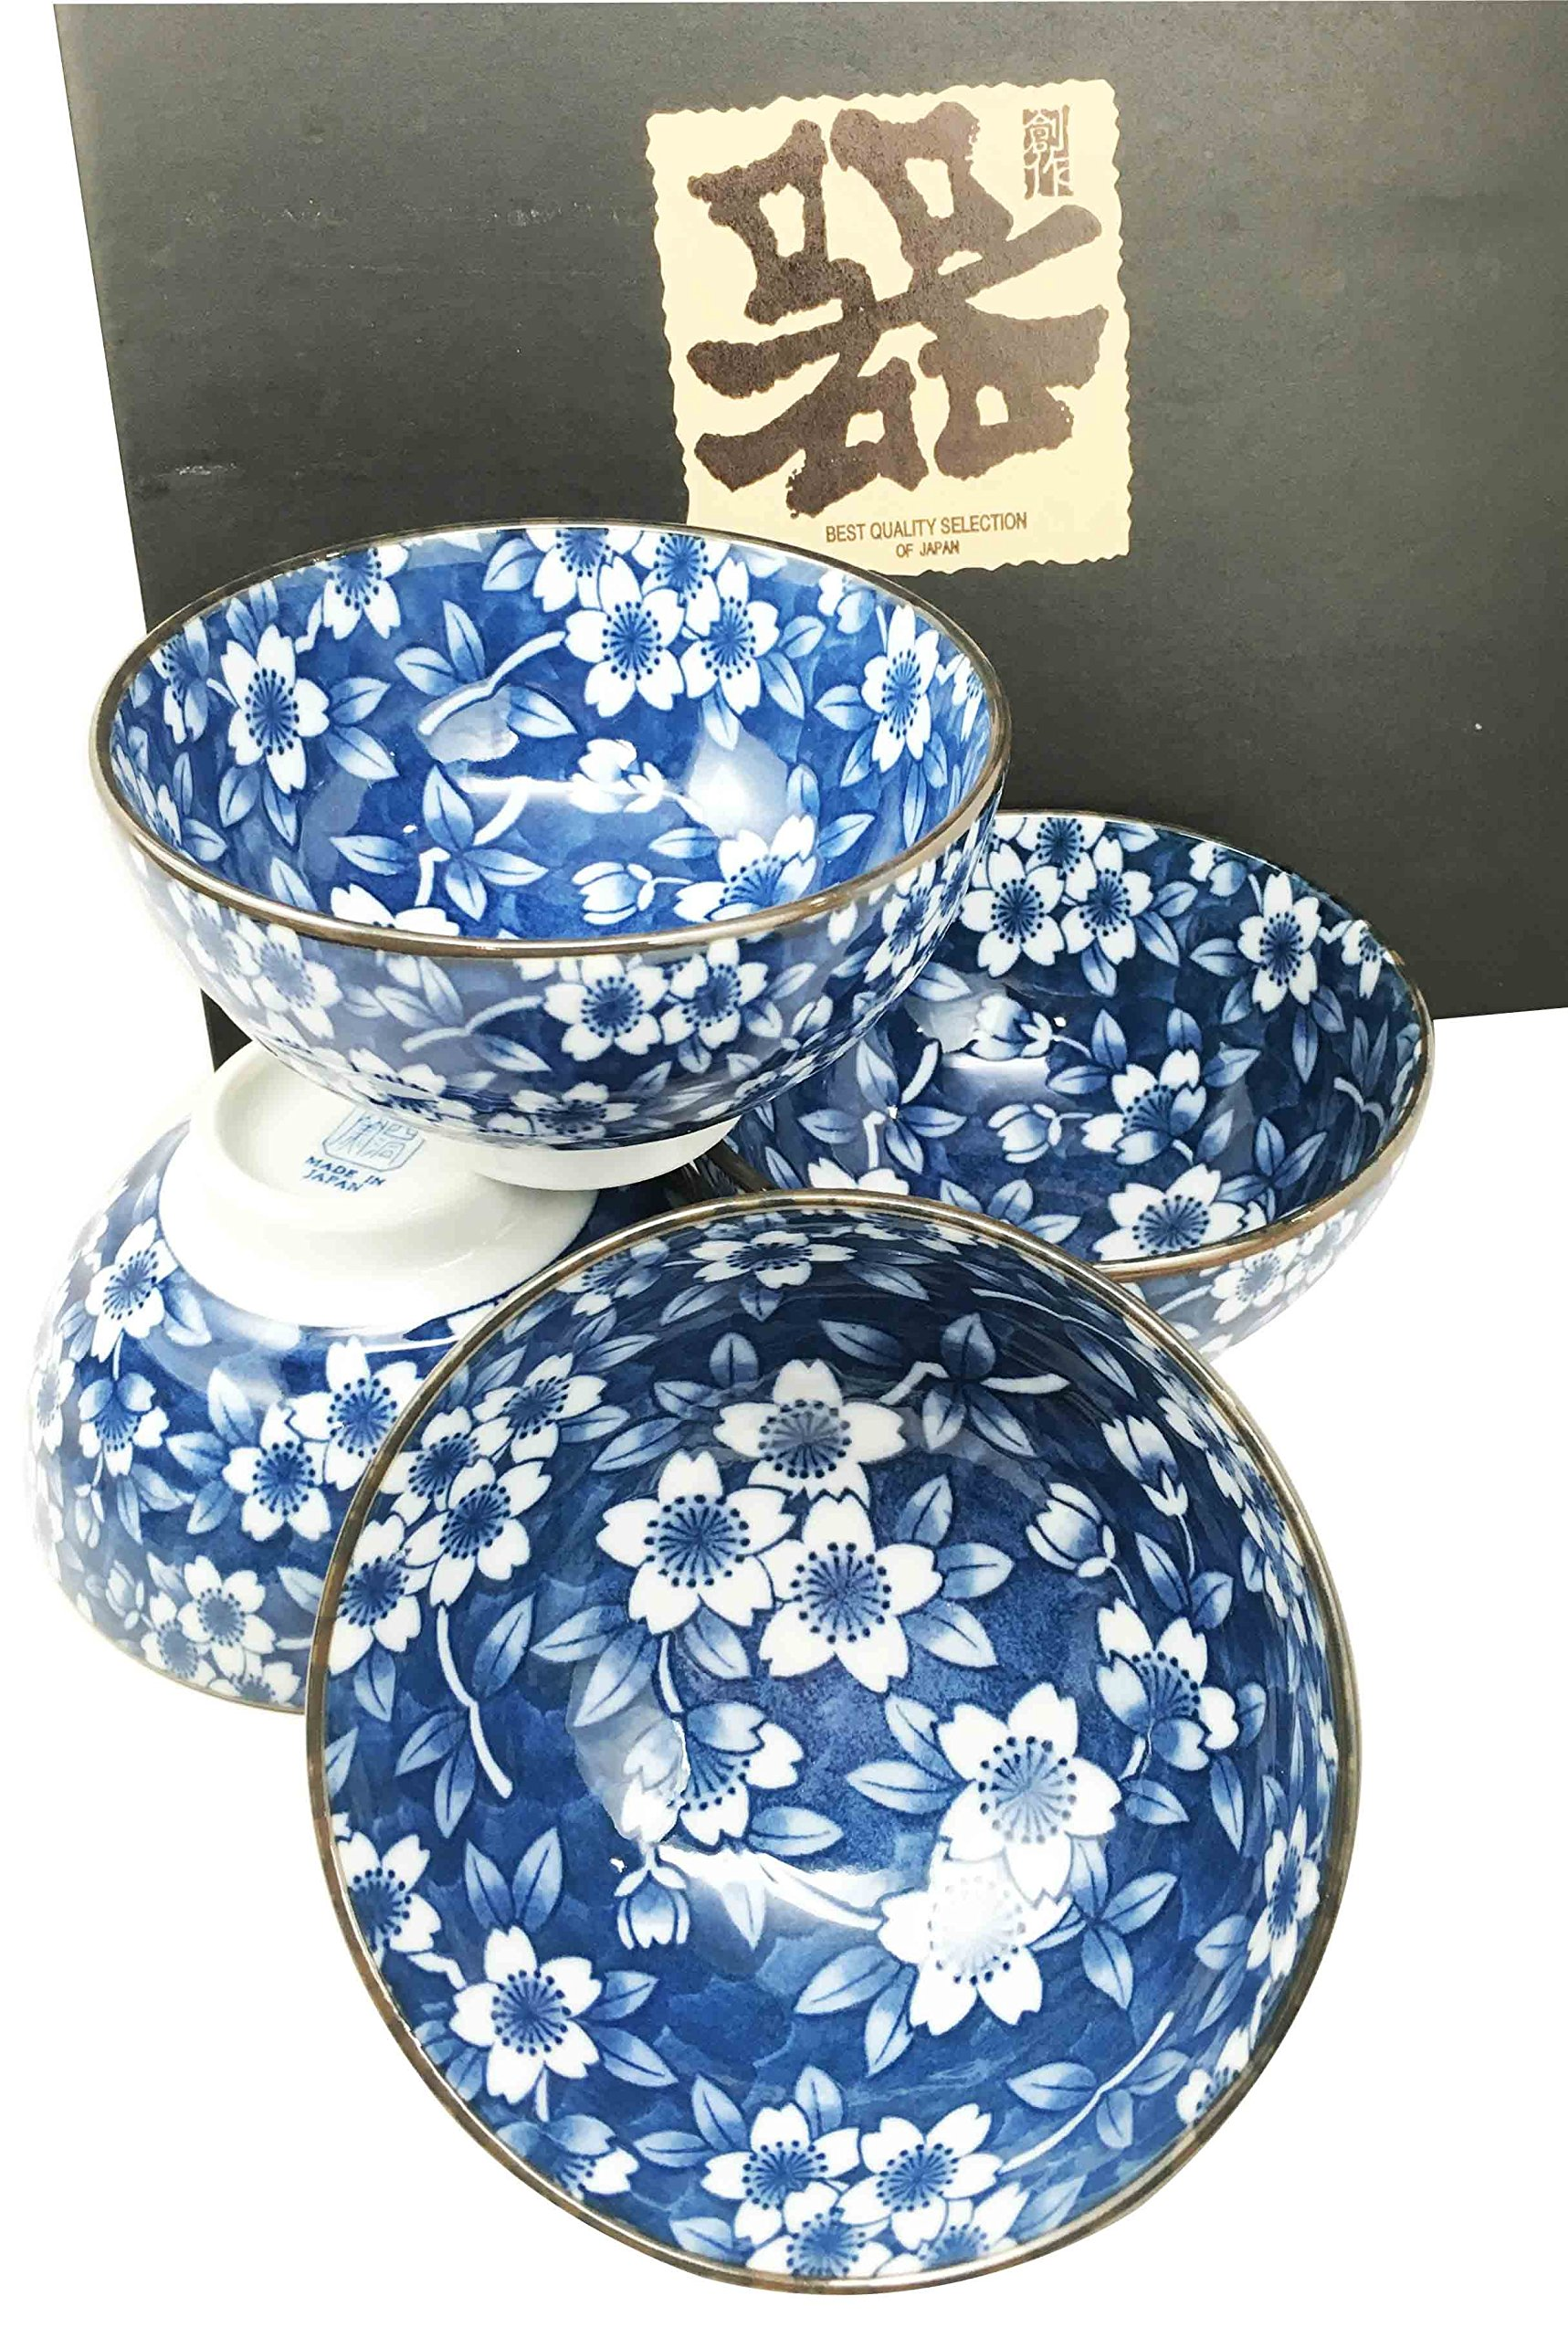 Made in Japan Blue Multi Pattern Glazed Ceramic Rice Meal Soup Dining Bowl Set 4.5'' Diameter Serves Four Great Gift Housewarming Asian Living Home Decor Kitchen Accessory Serving Dishware